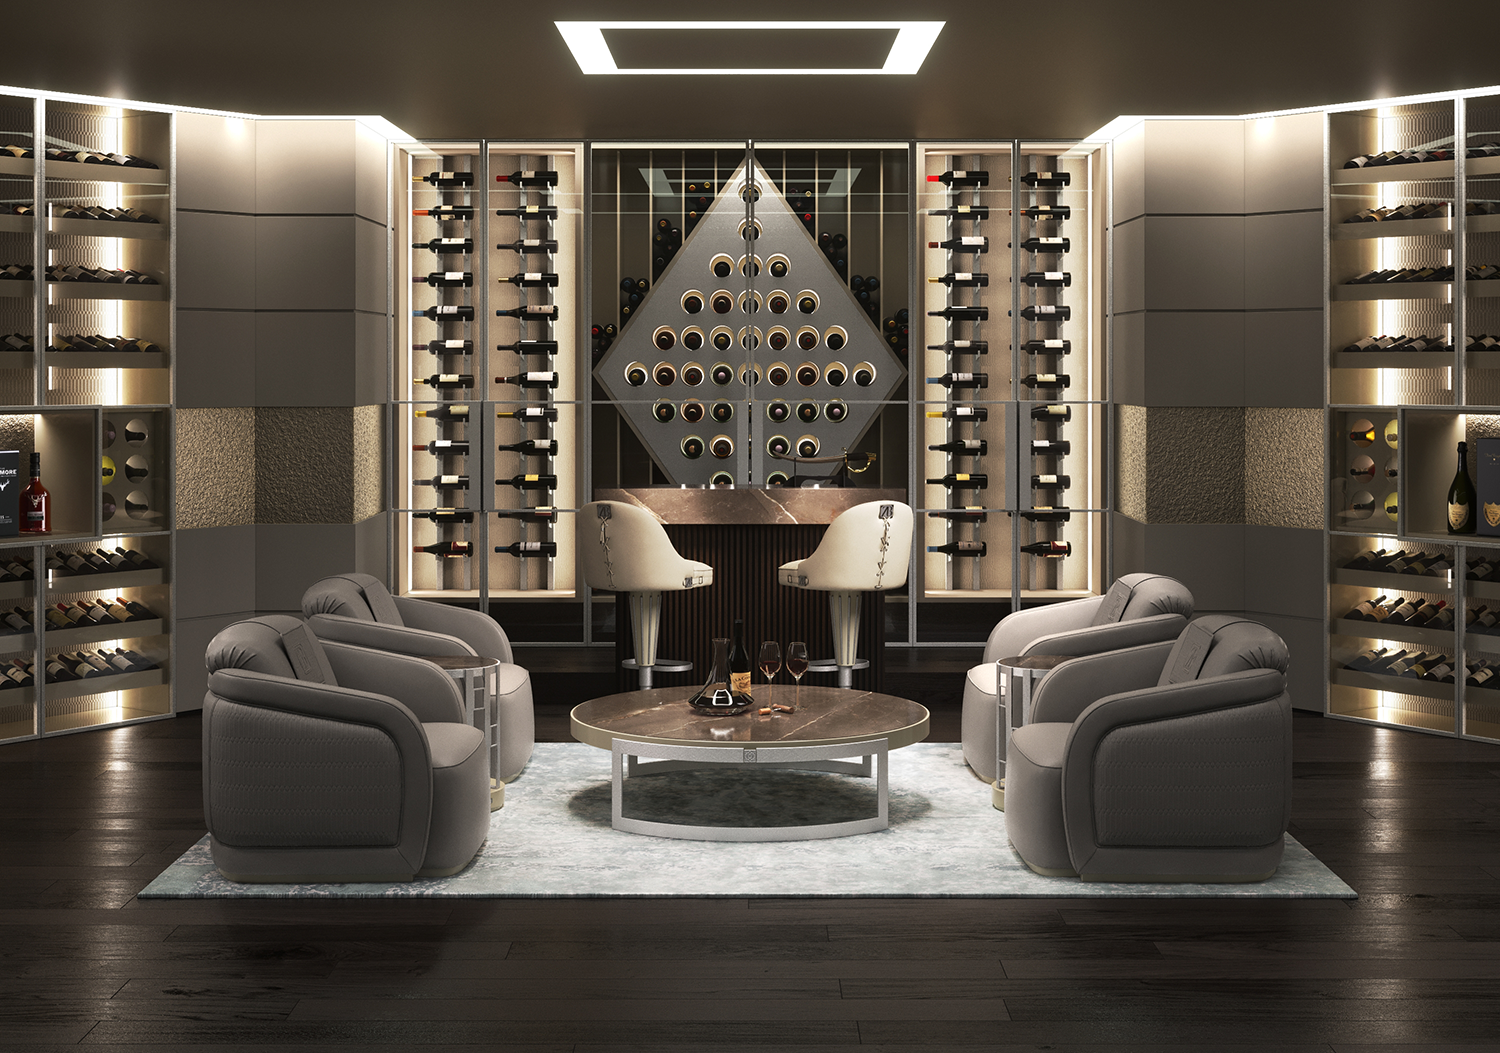 A Delightful night, enjoying a relaxing experience in ZB luxury wine-tasting room